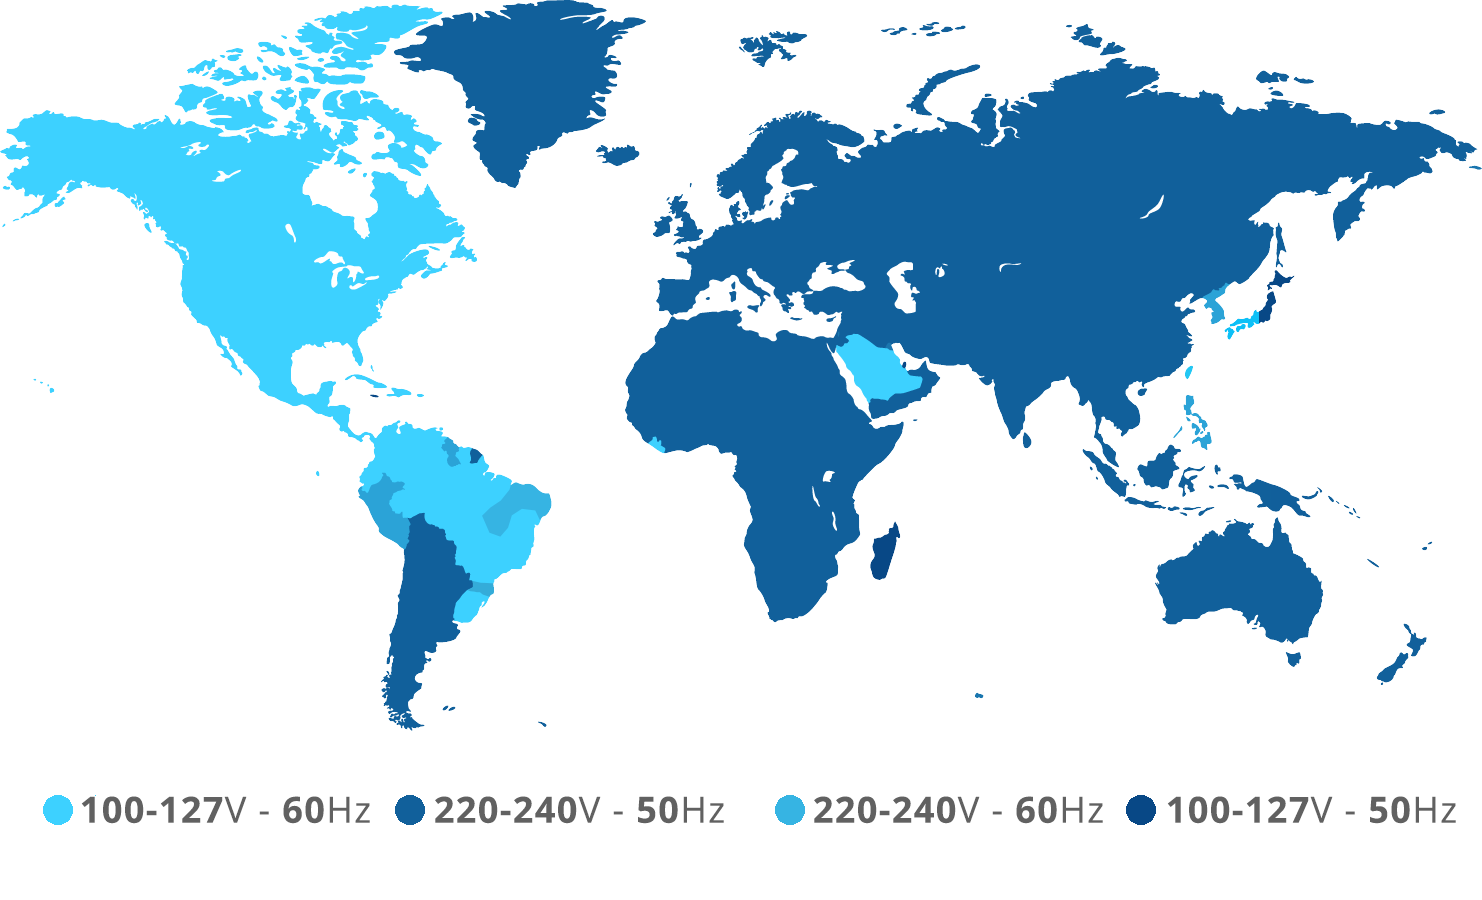 Socket voltage and frequency used around the world